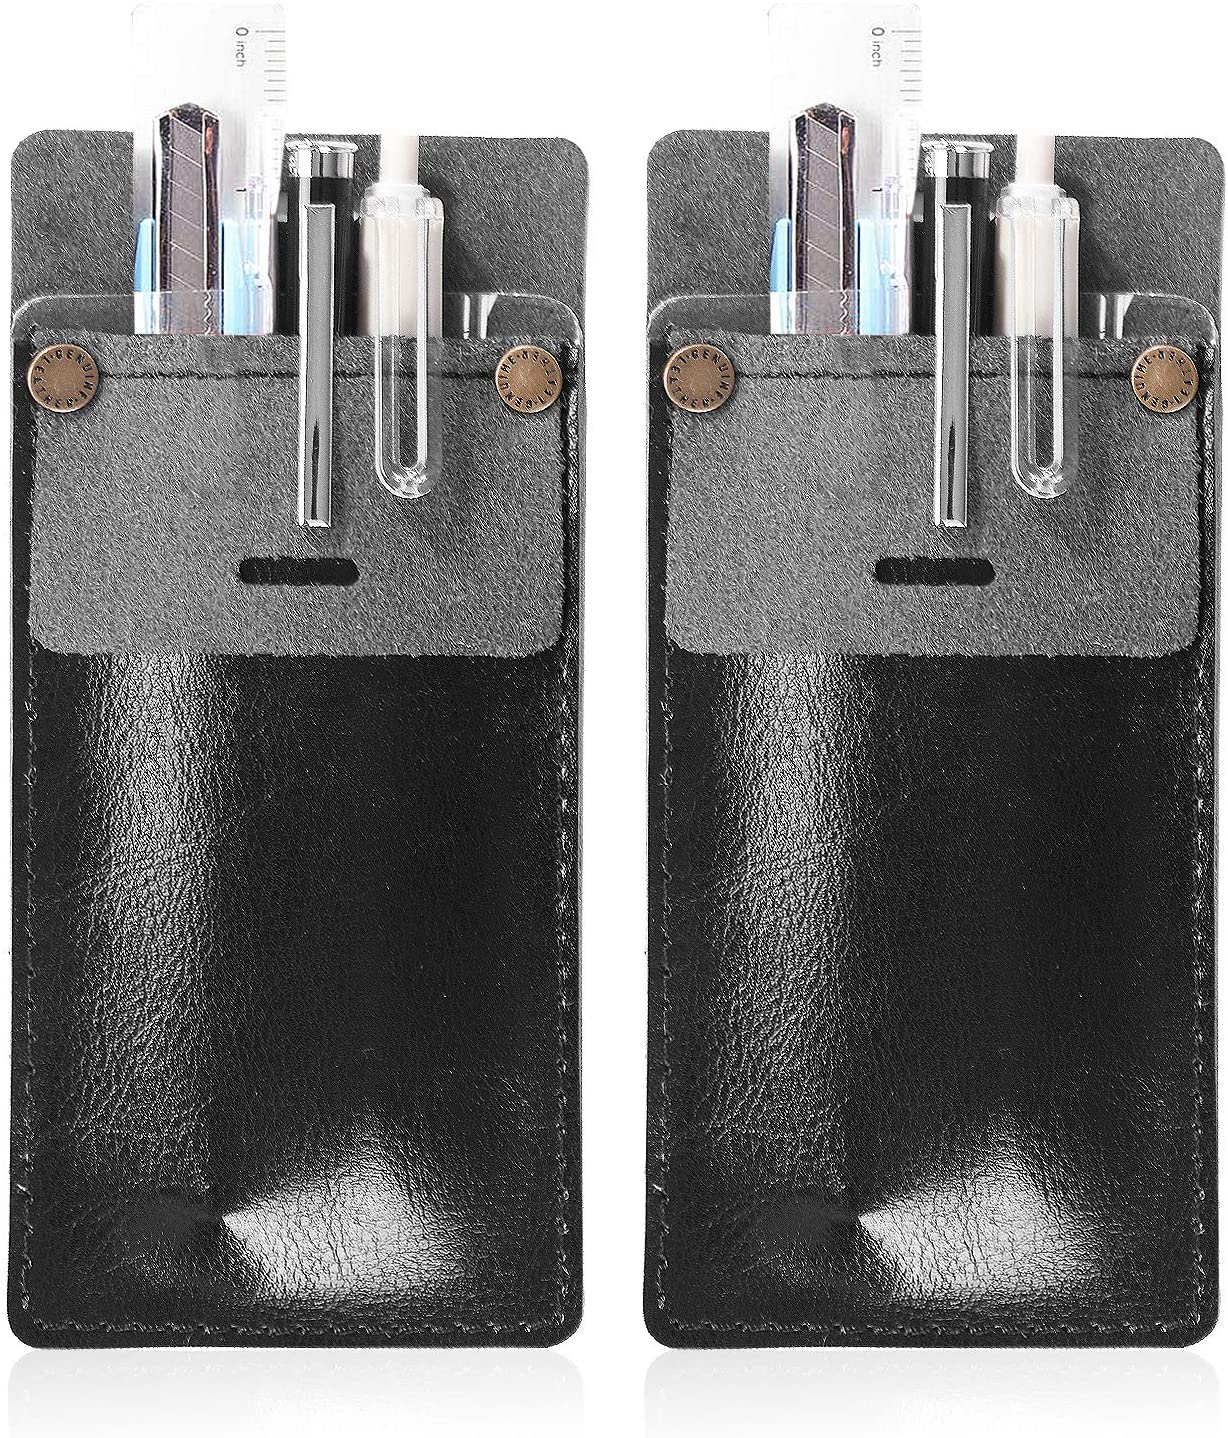 CRIPOP 2 Pack Leather Pocket Protectors,Pen Holders Pencil Holders for Shirts, Lab Coats